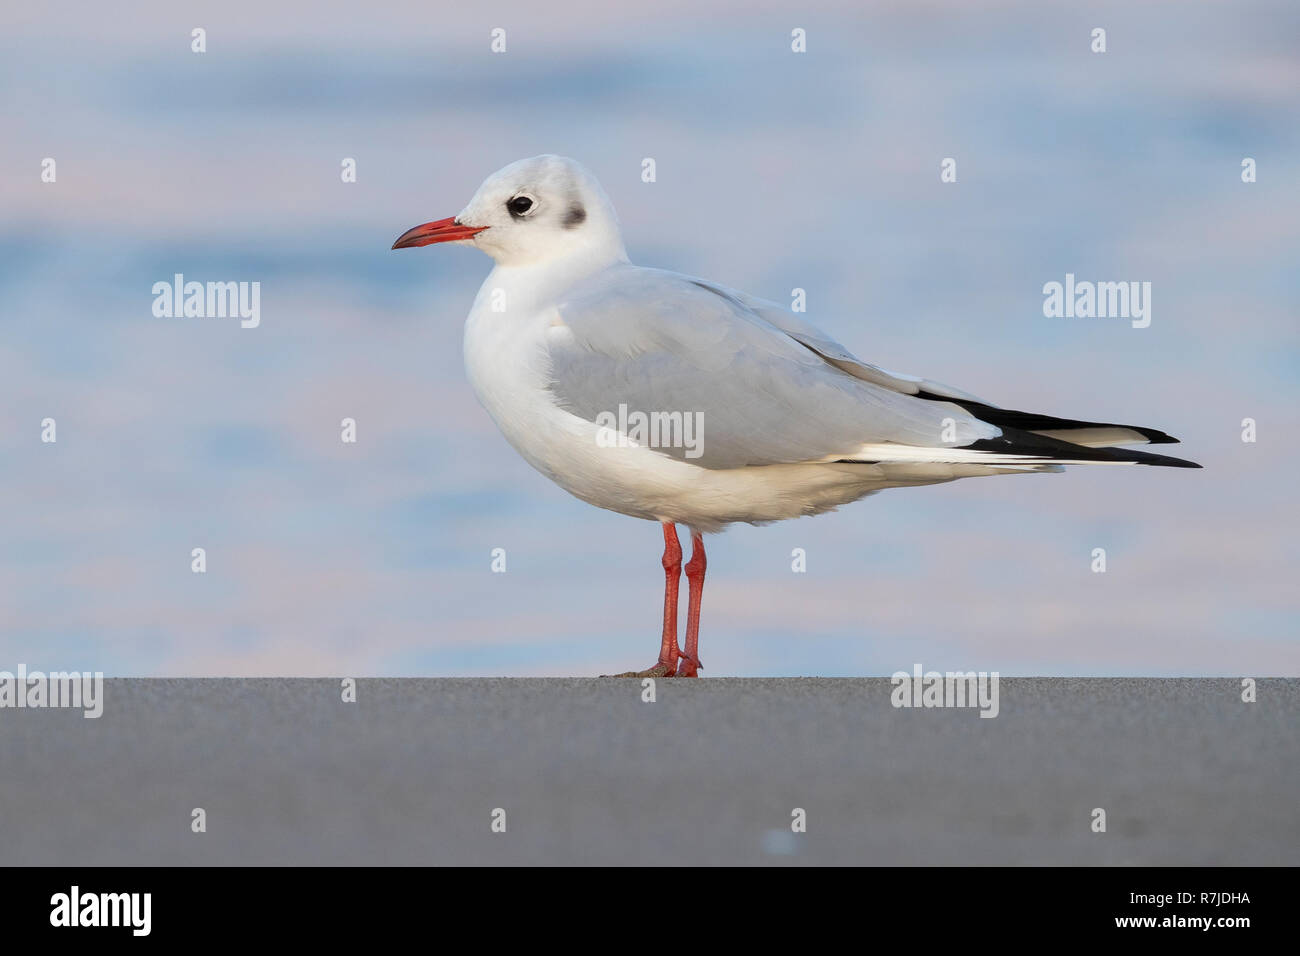 Black-headed Gull (Chroicocephalus ridibundus), side view of an adult in winter plumage standing on the shore - Stock Image